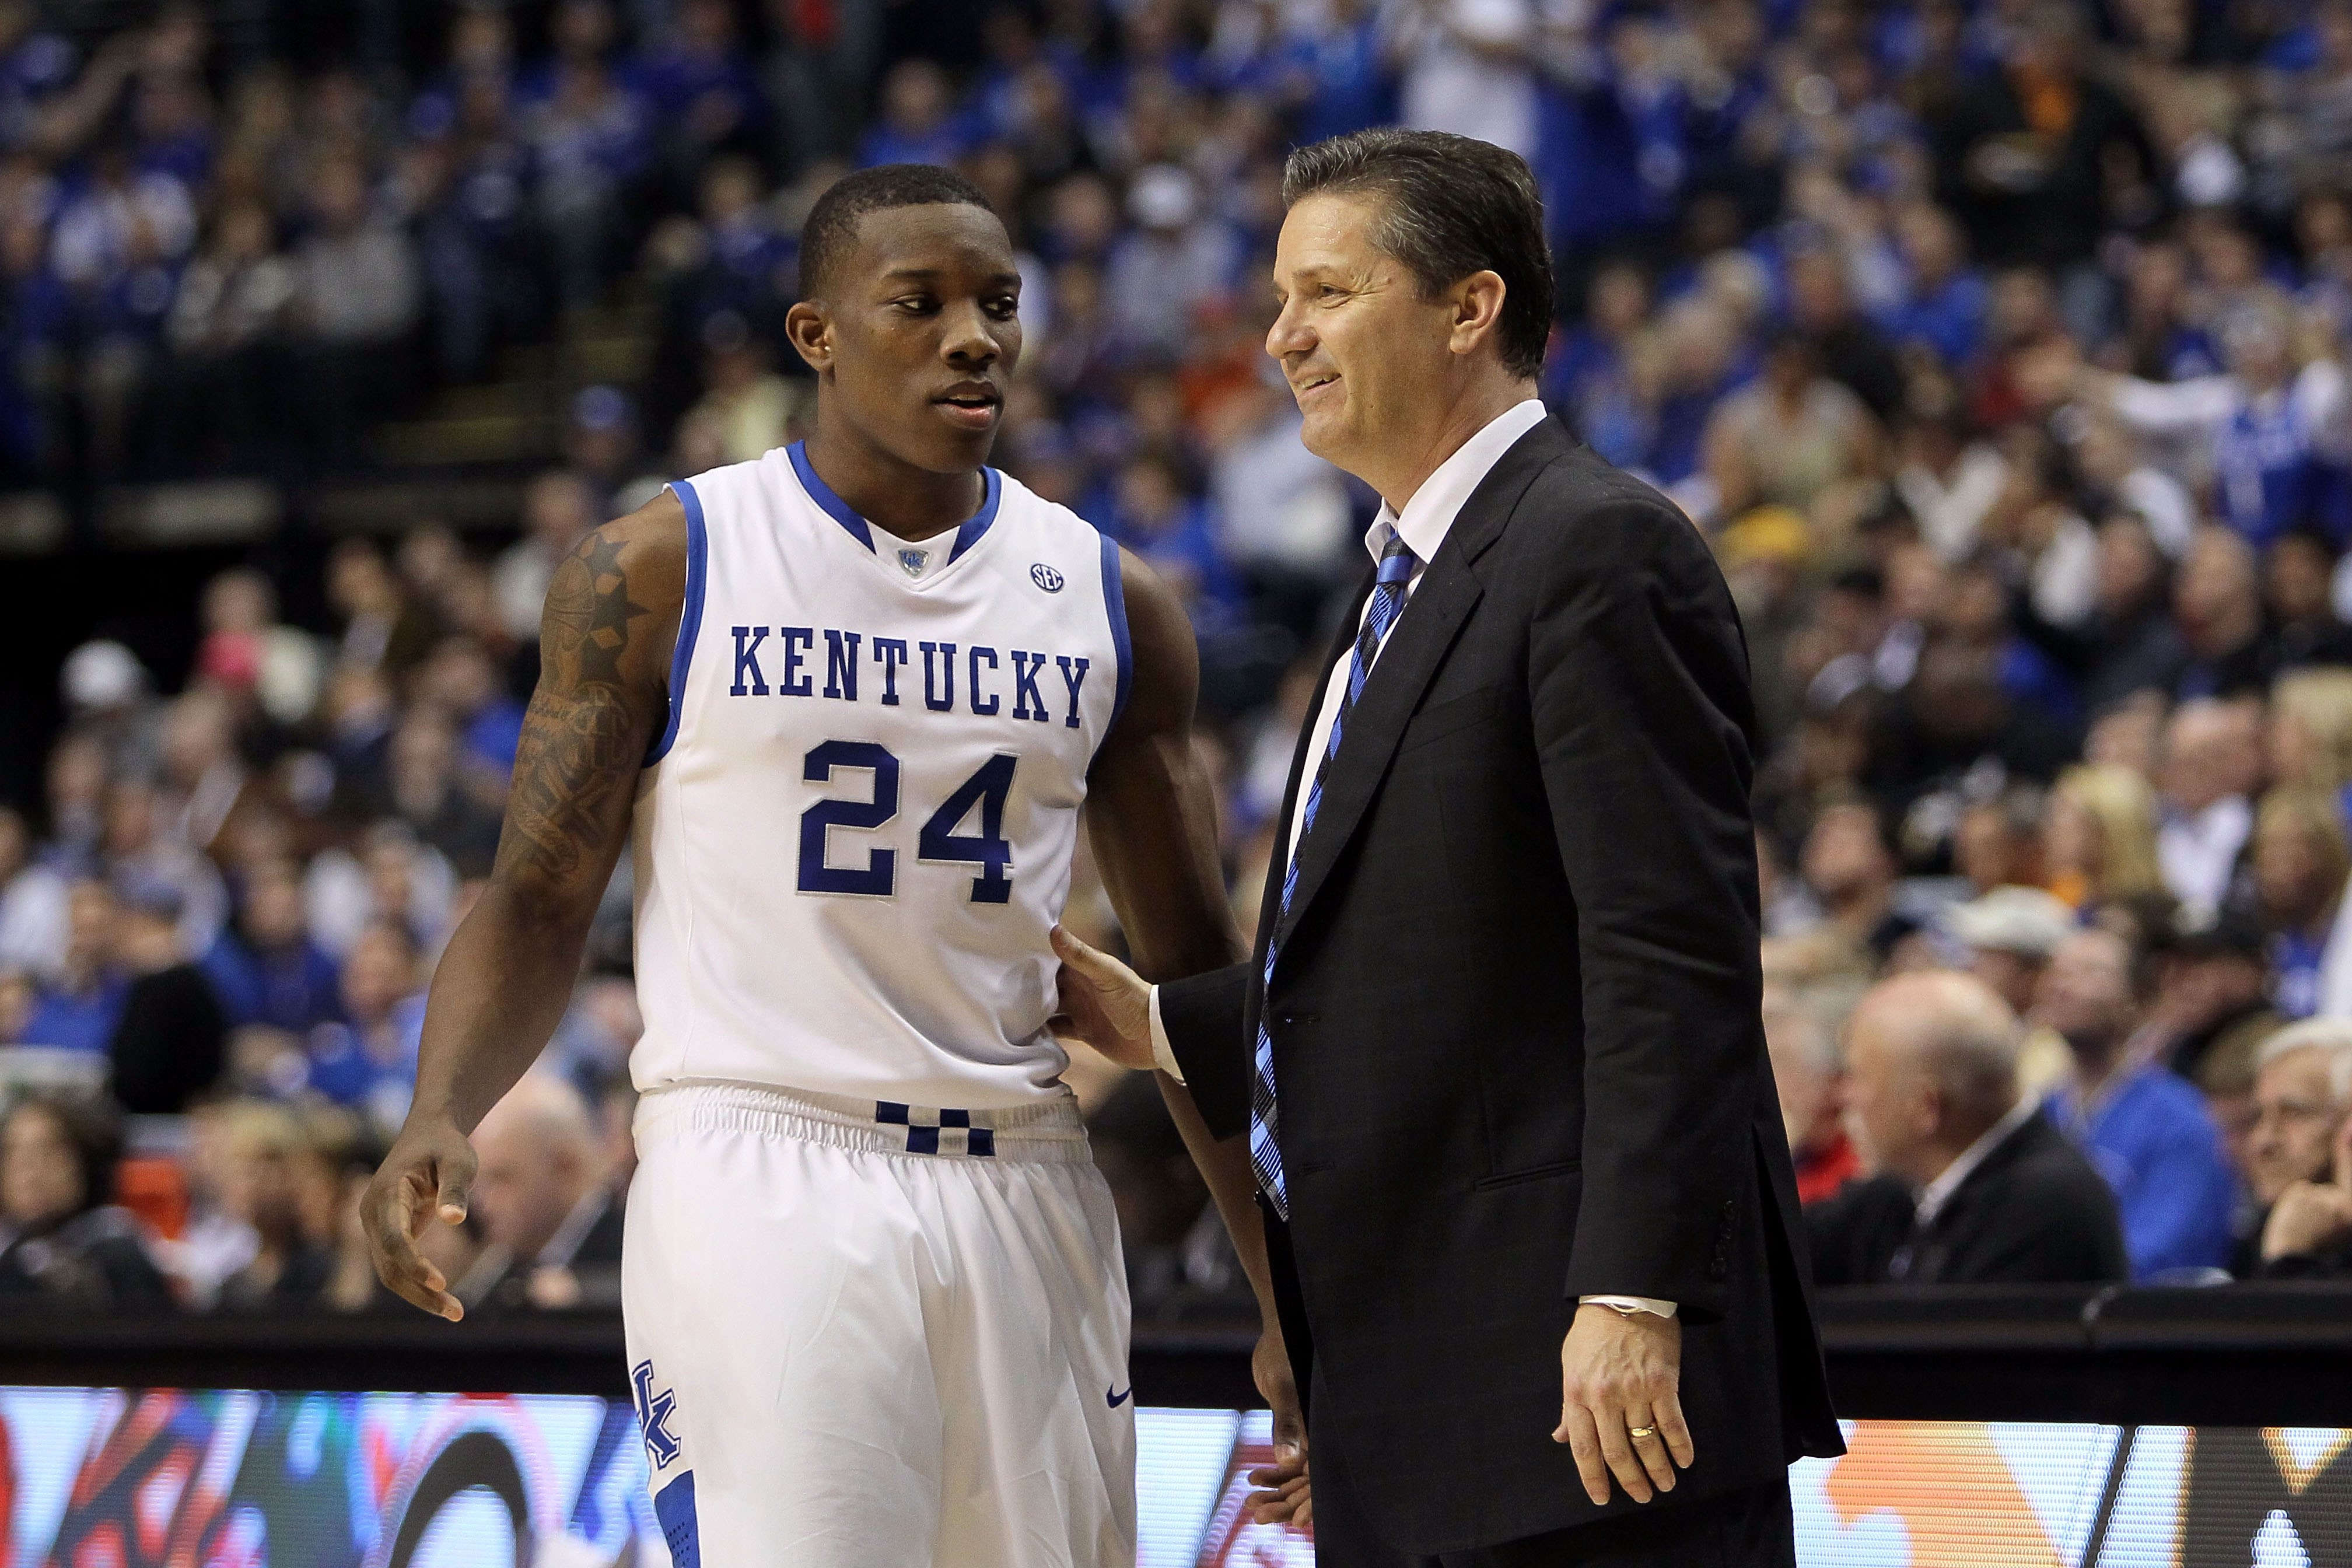 NASHVILLE, TN - MARCH 13:  Head coach John Calipari and Eric Bledsoe #24 of the Kentucky Wildcats talk on court against the Tennessee Volunteers during the semirfinals of the SEC Men's Basketball Tournament at the Bridgestone Arena on March 13, 2010 in Na